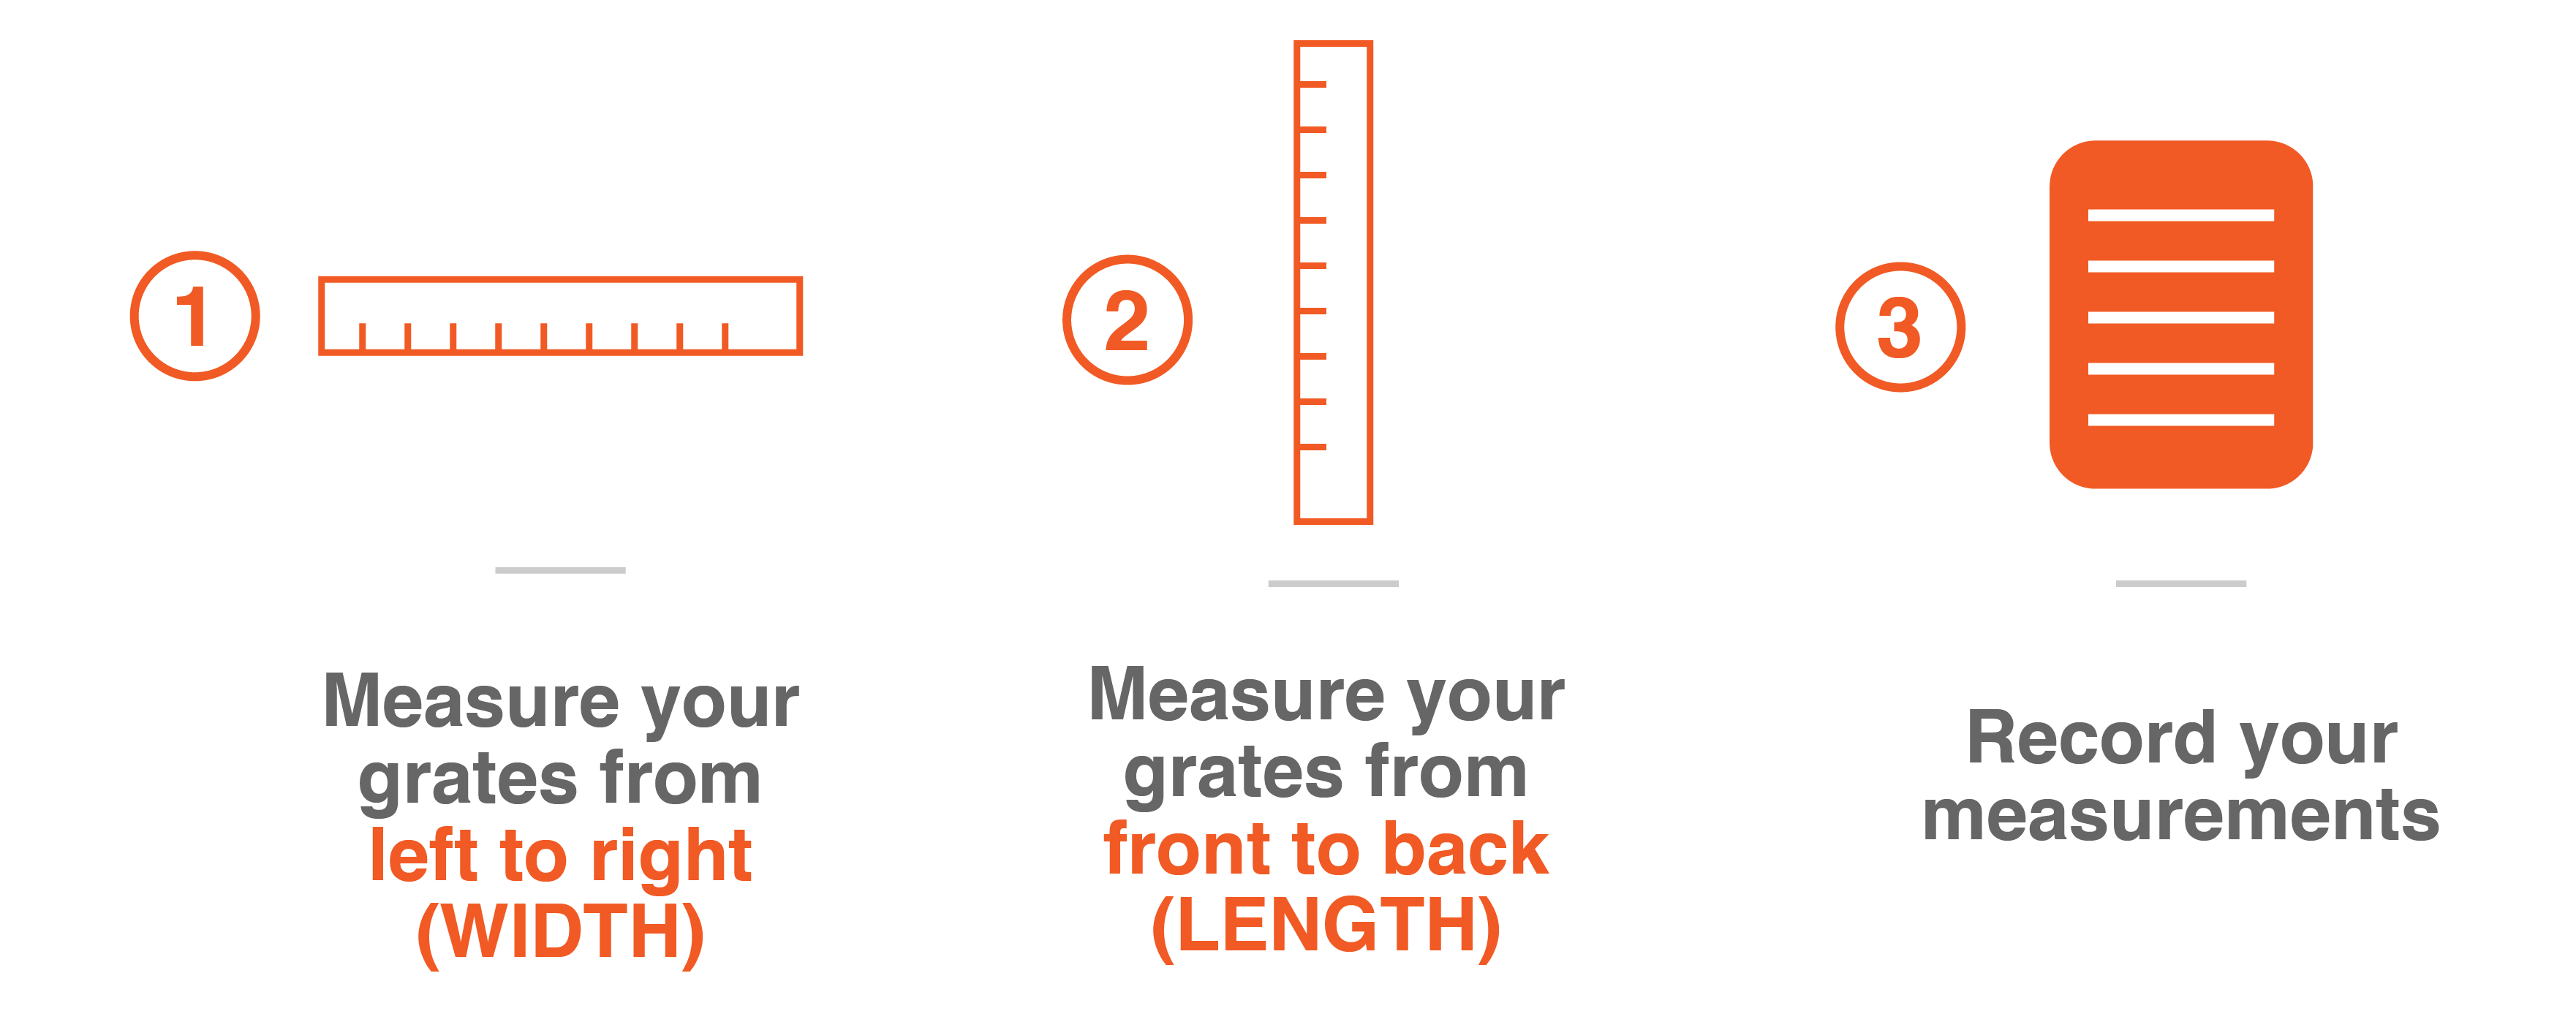 Steps to find your grate size